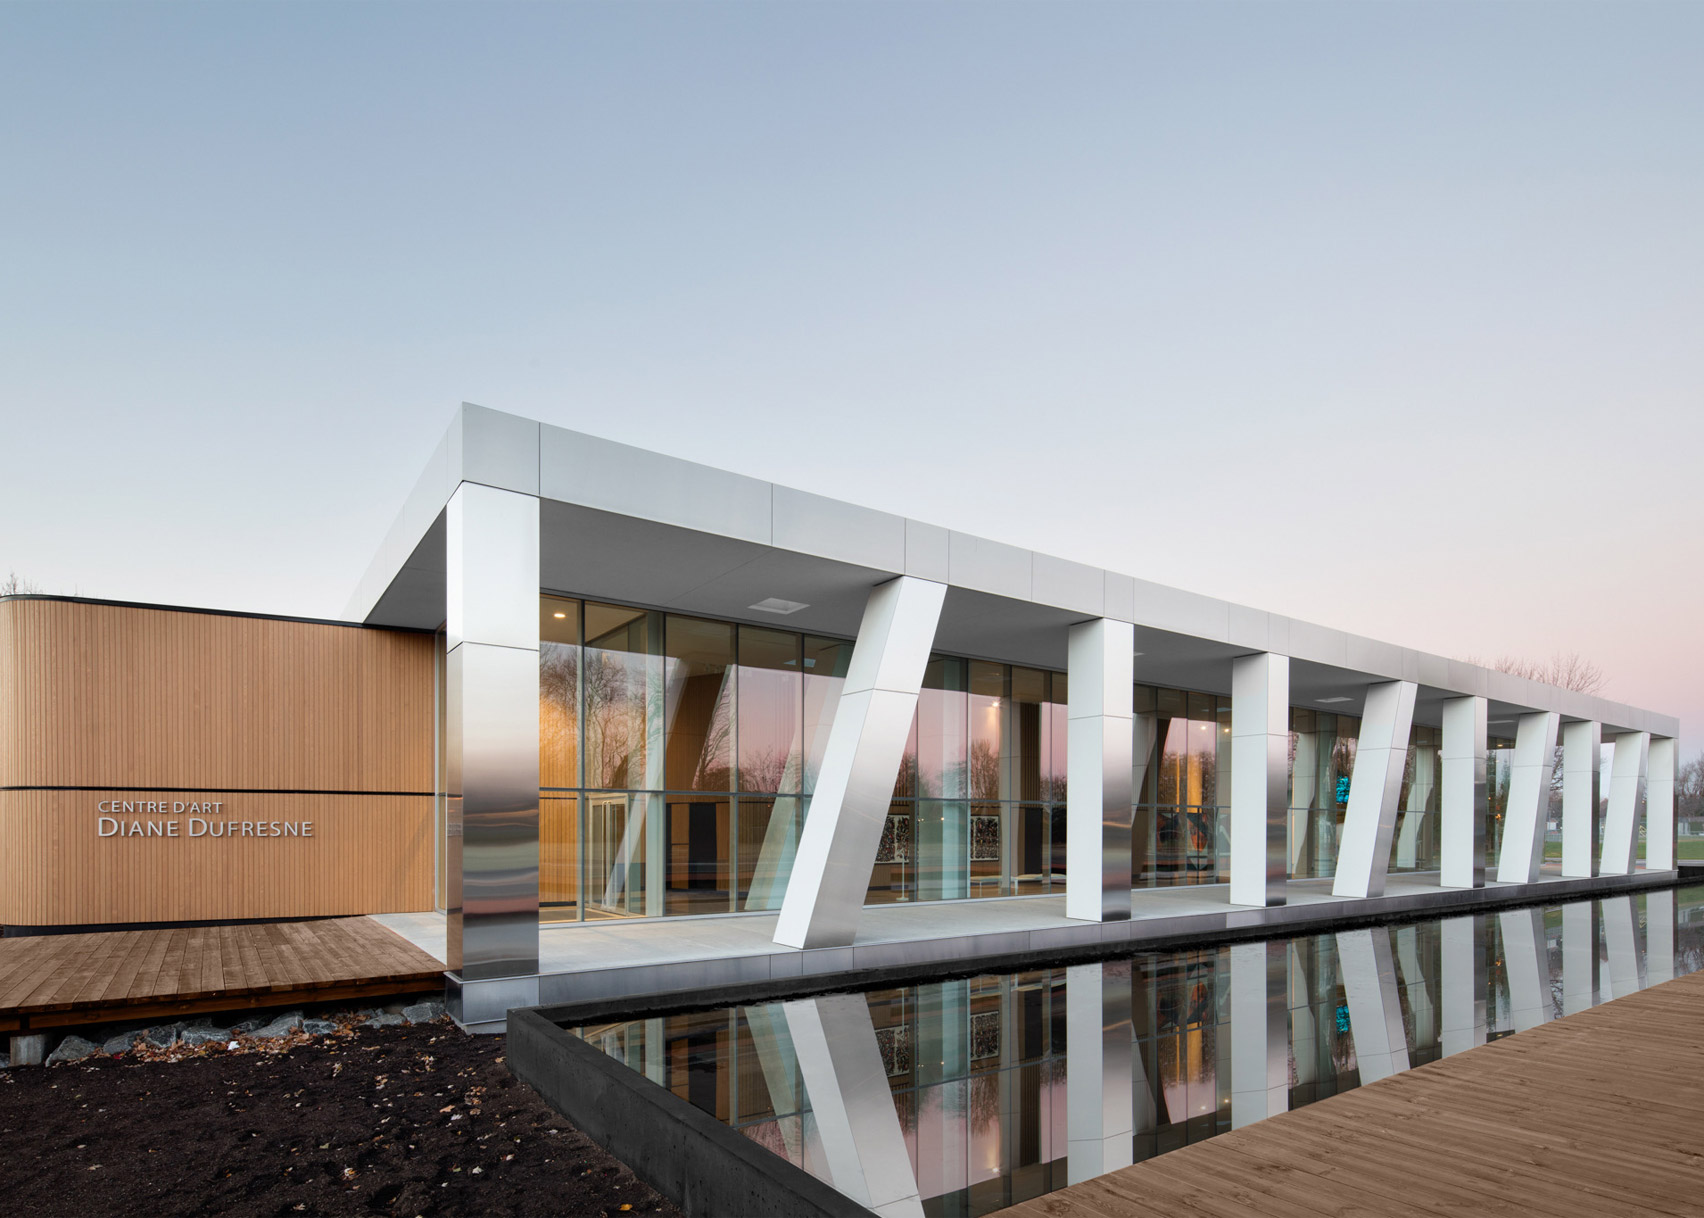 Diane Dufresne Art Centre by ACDF